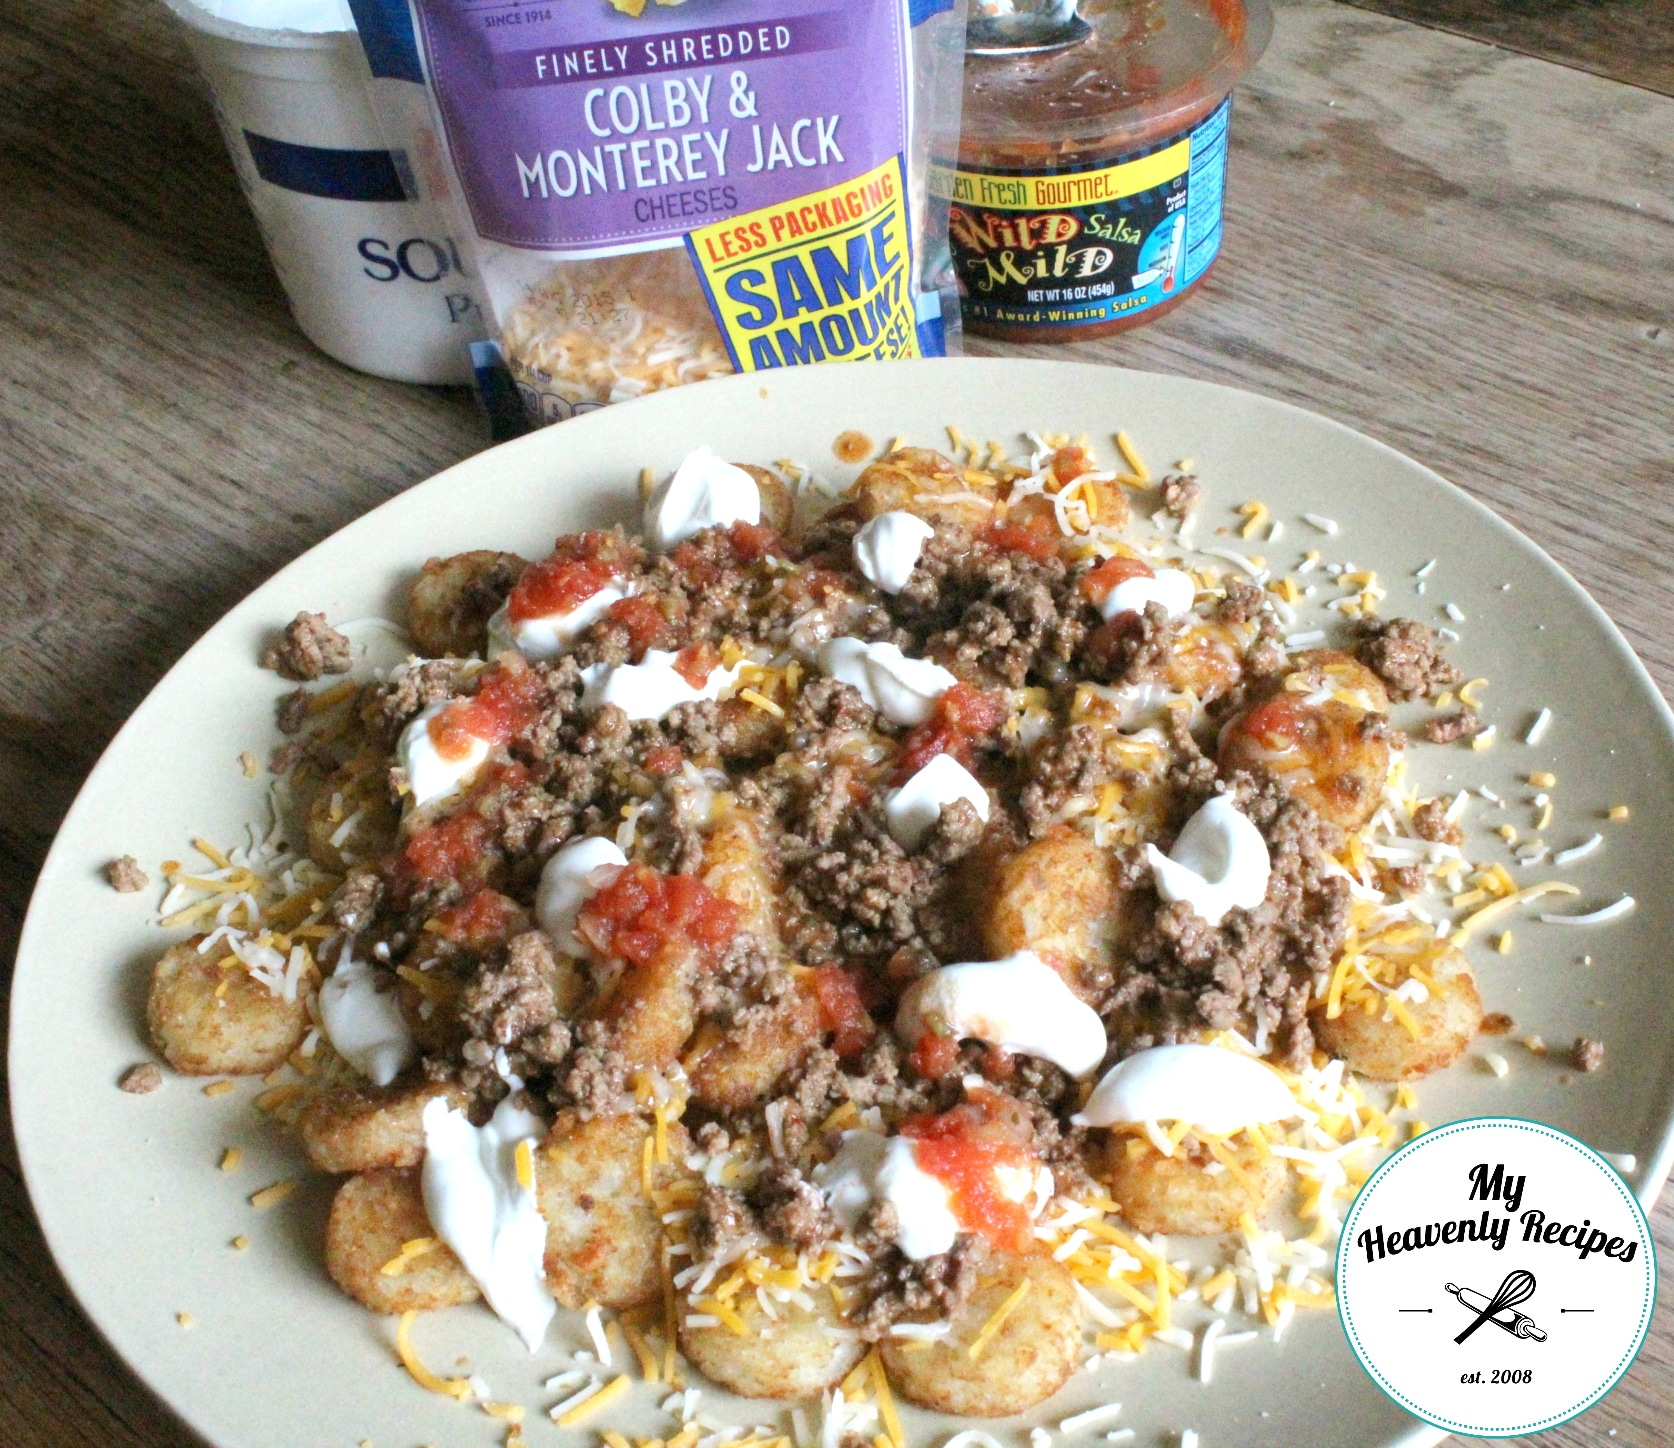 Tater Tot Nachos topped with meat, cheese, tomatoes, and sour cream